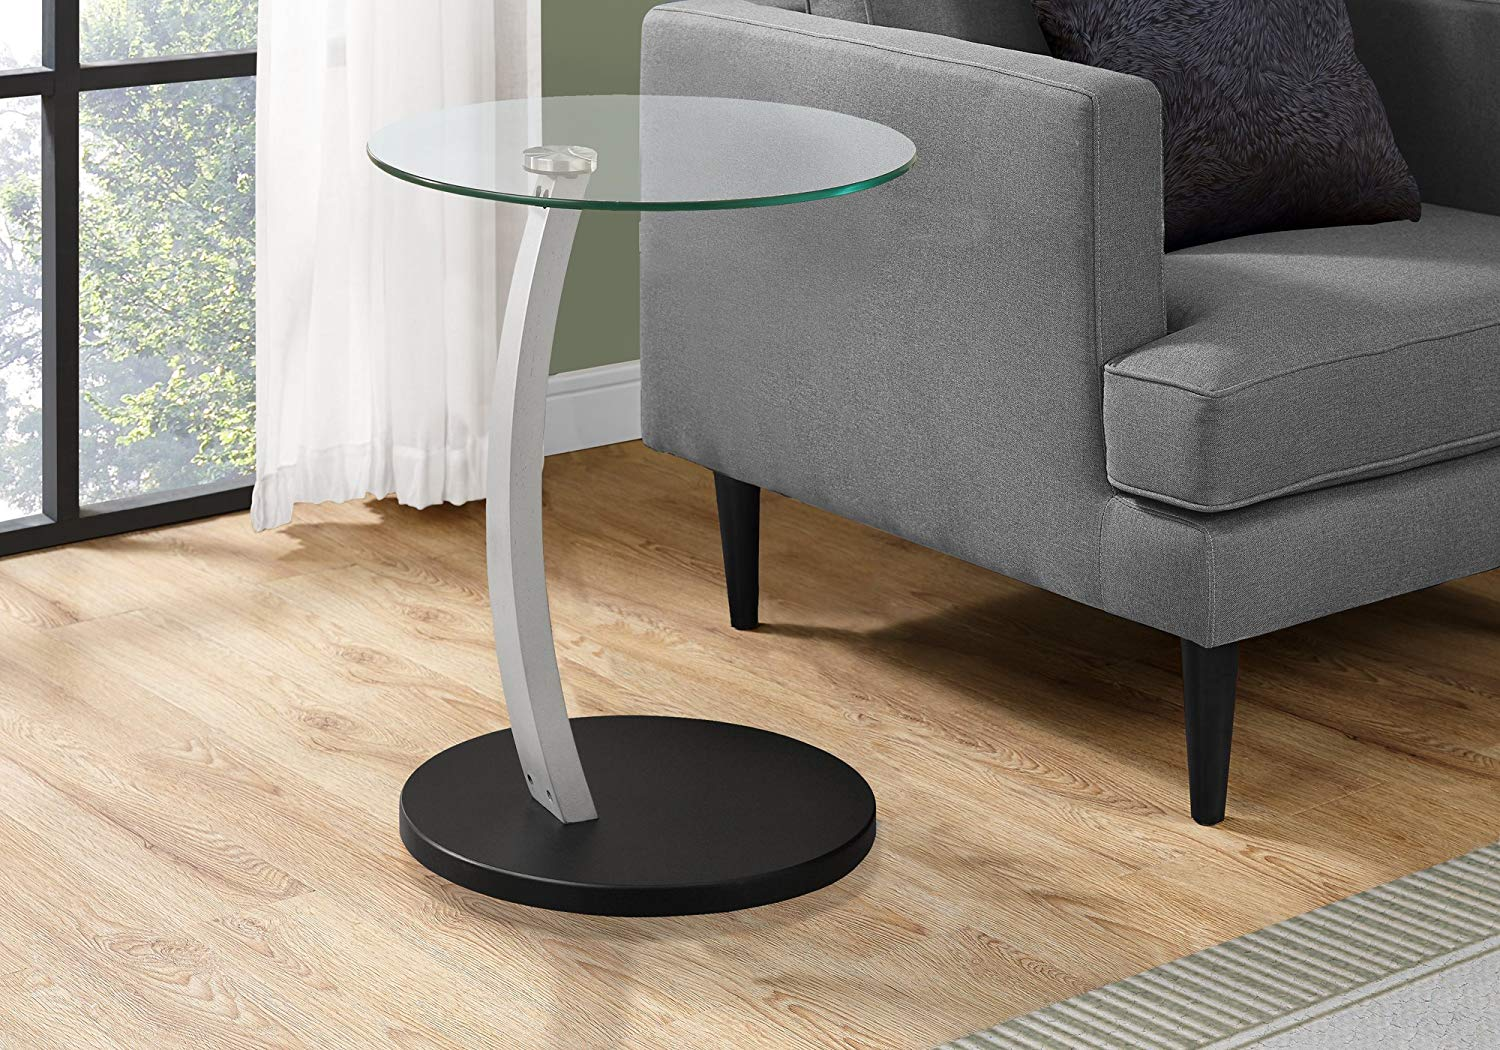 monarch specialties bentwood accent table with tempered glass black kitchen dining round metal large numeral clock area furniture small wooden for spaces uttermost mirrors patio